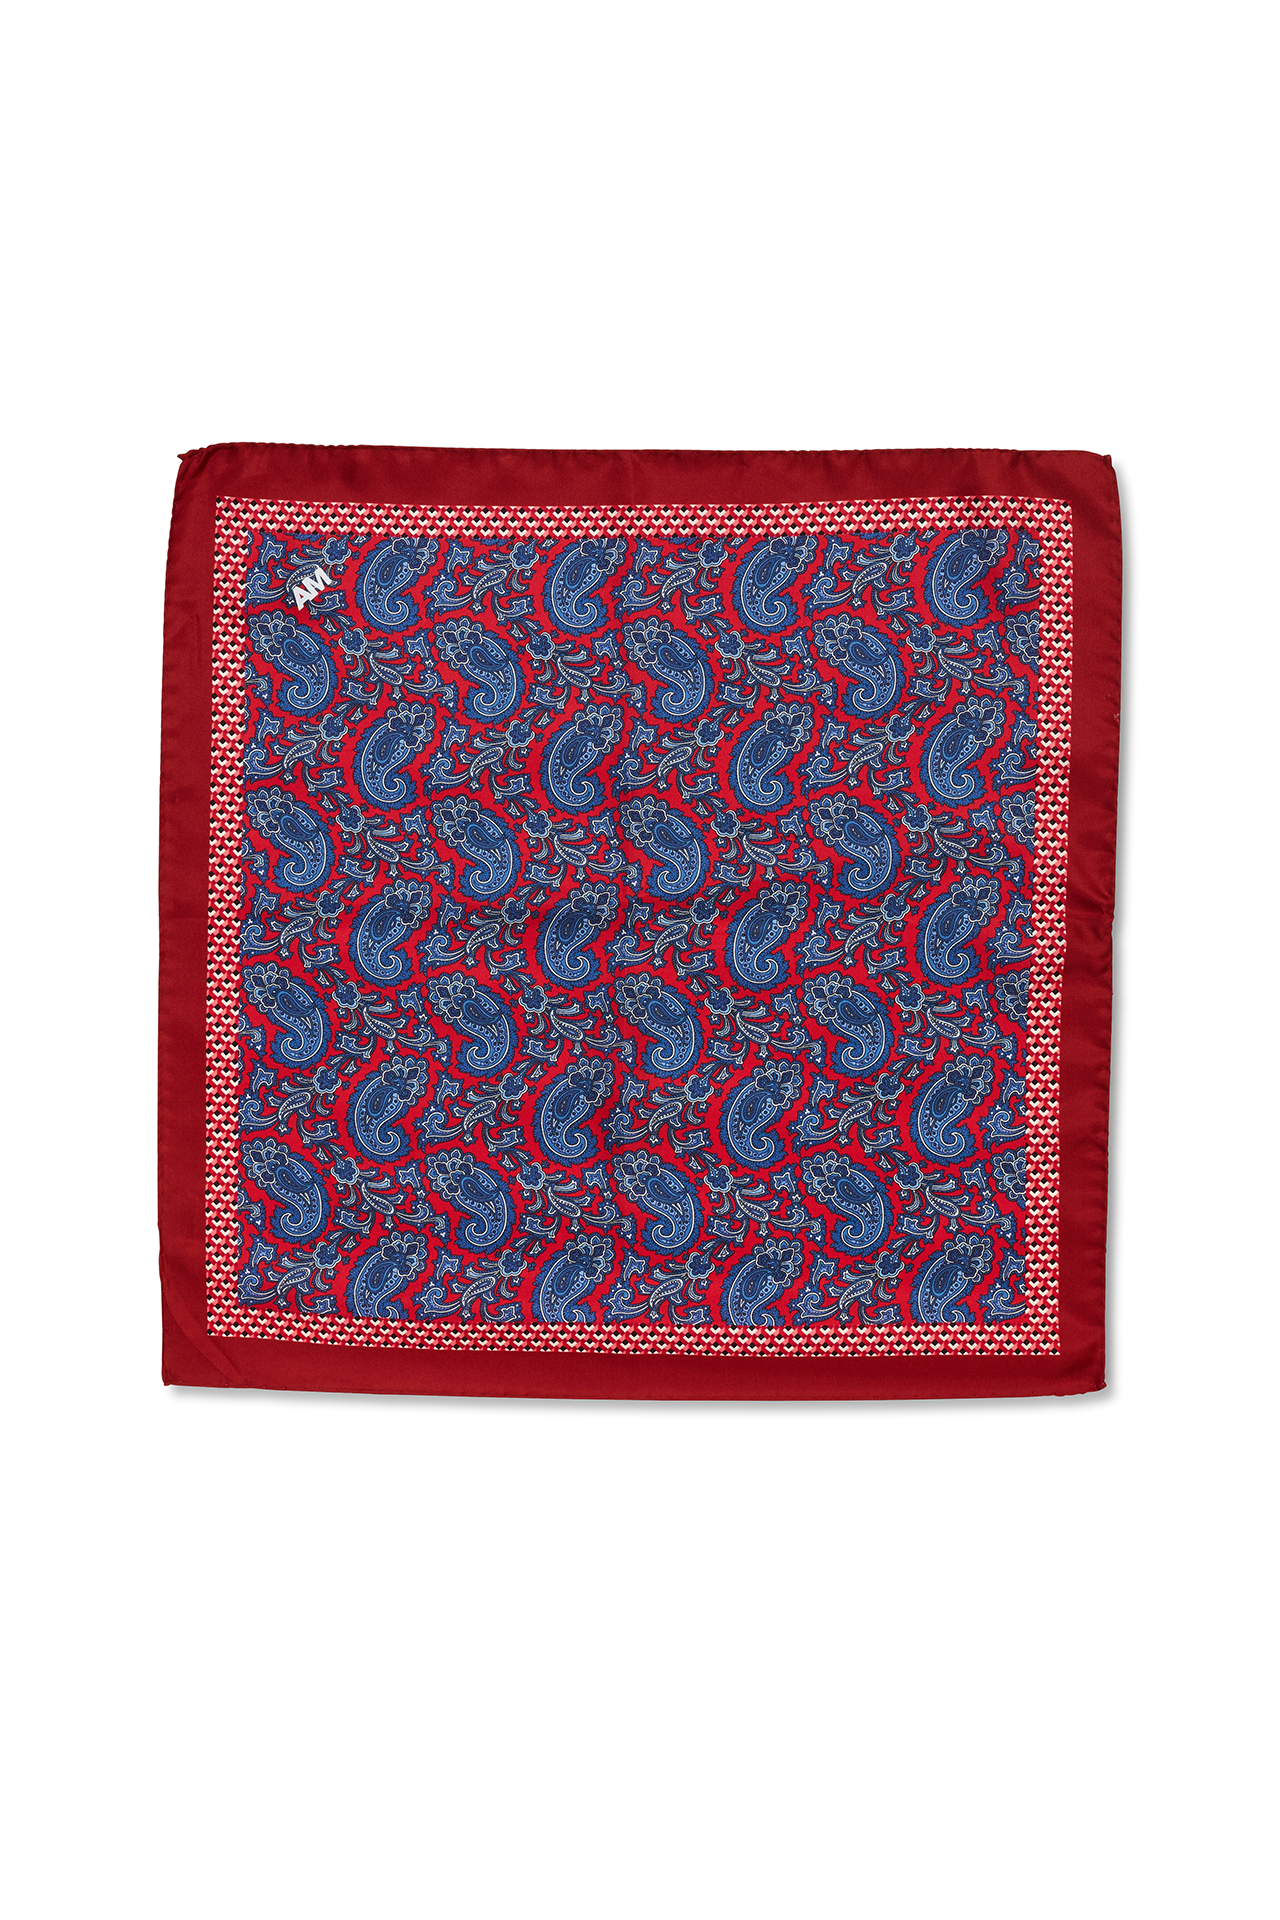 Red with Blue Paisley Pocket Square